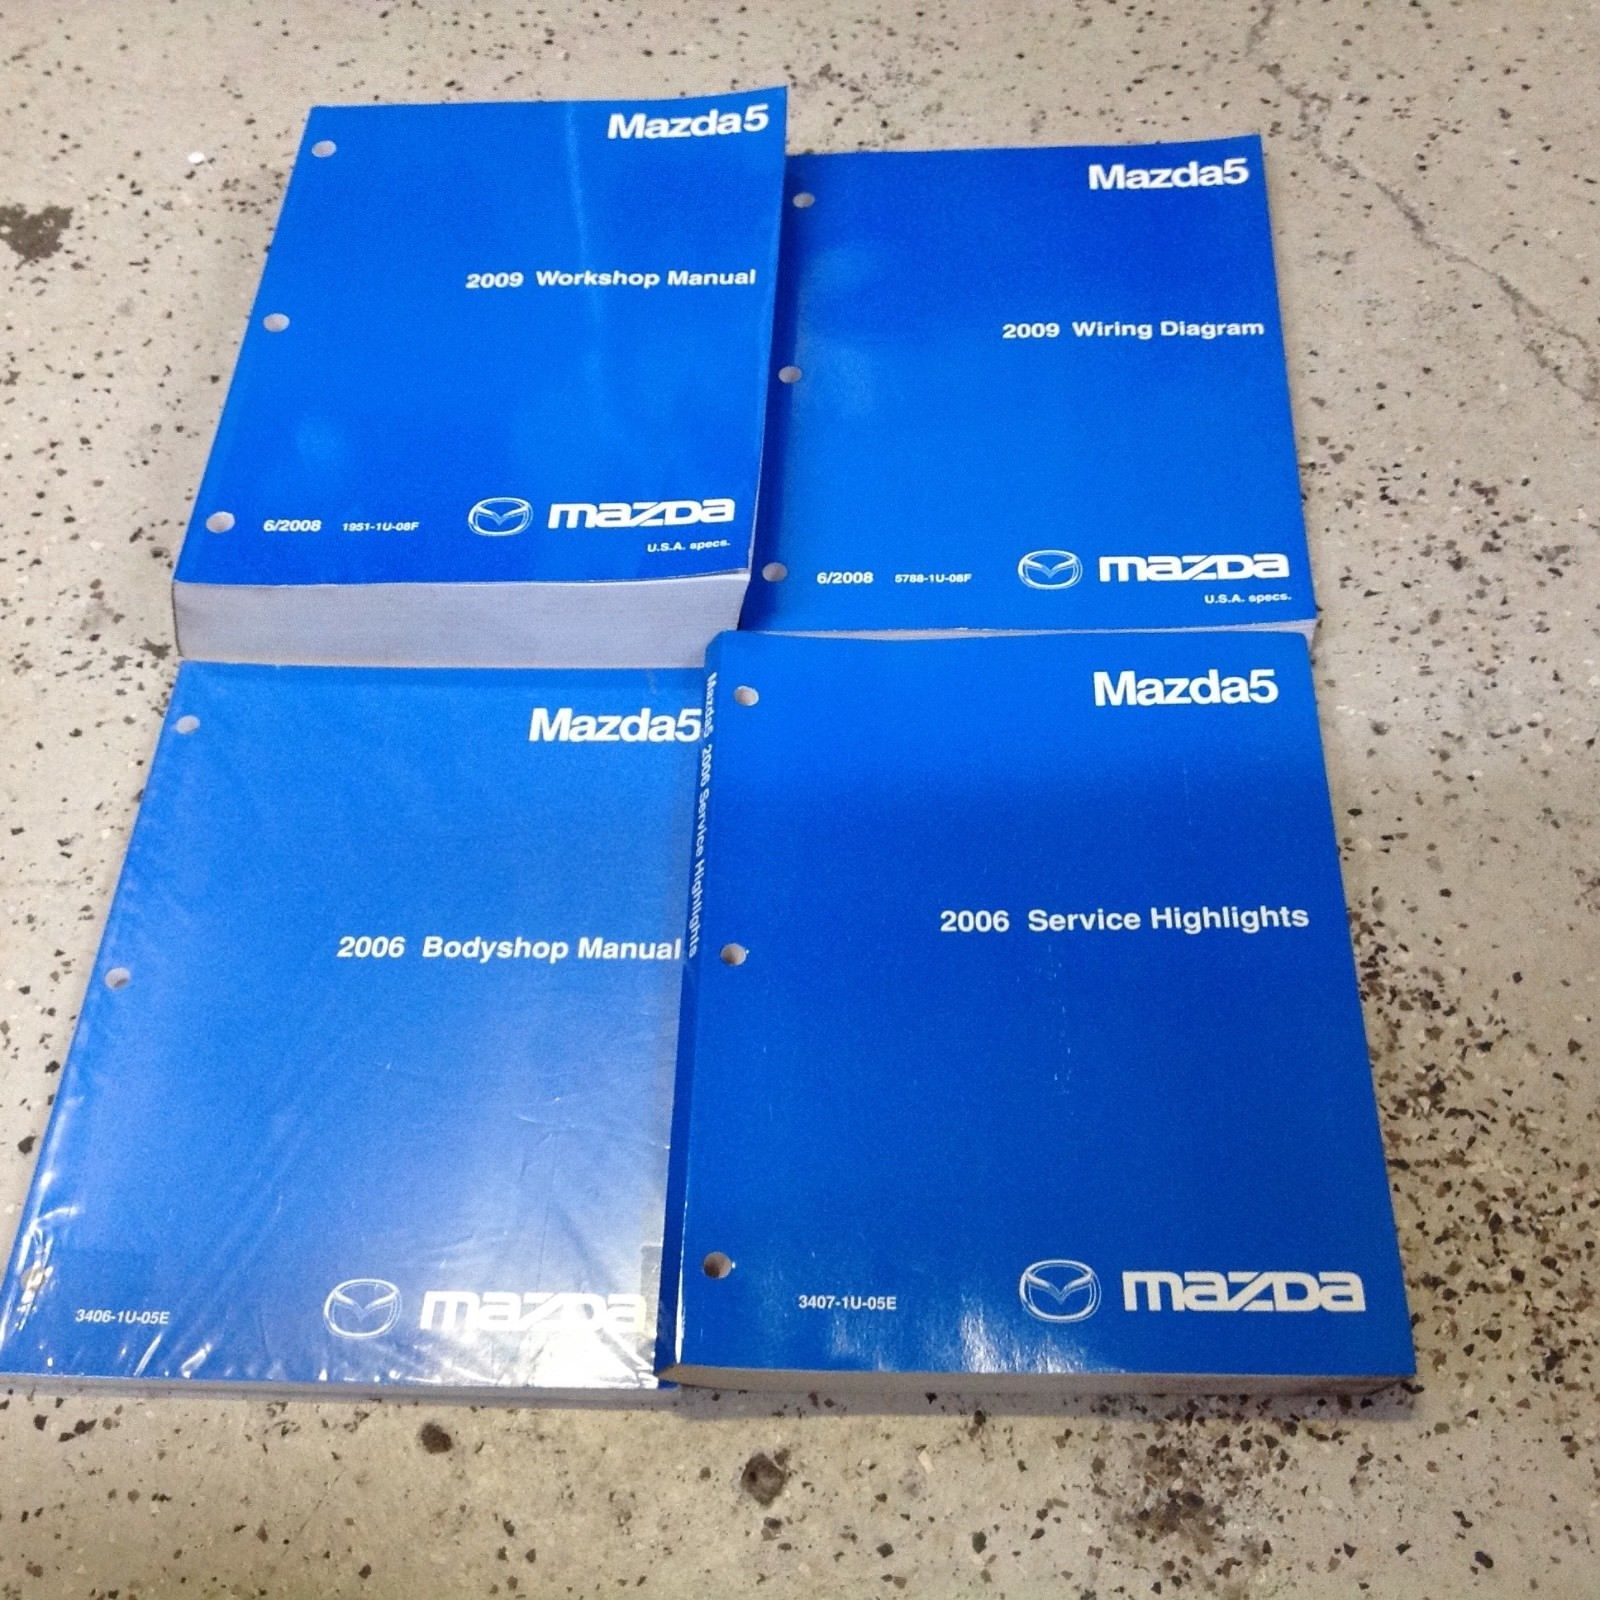 2009 Mazda5 MAZDA 5 Service Repair Shop Manual Set W EWD Body Highlights OEM - $247.45